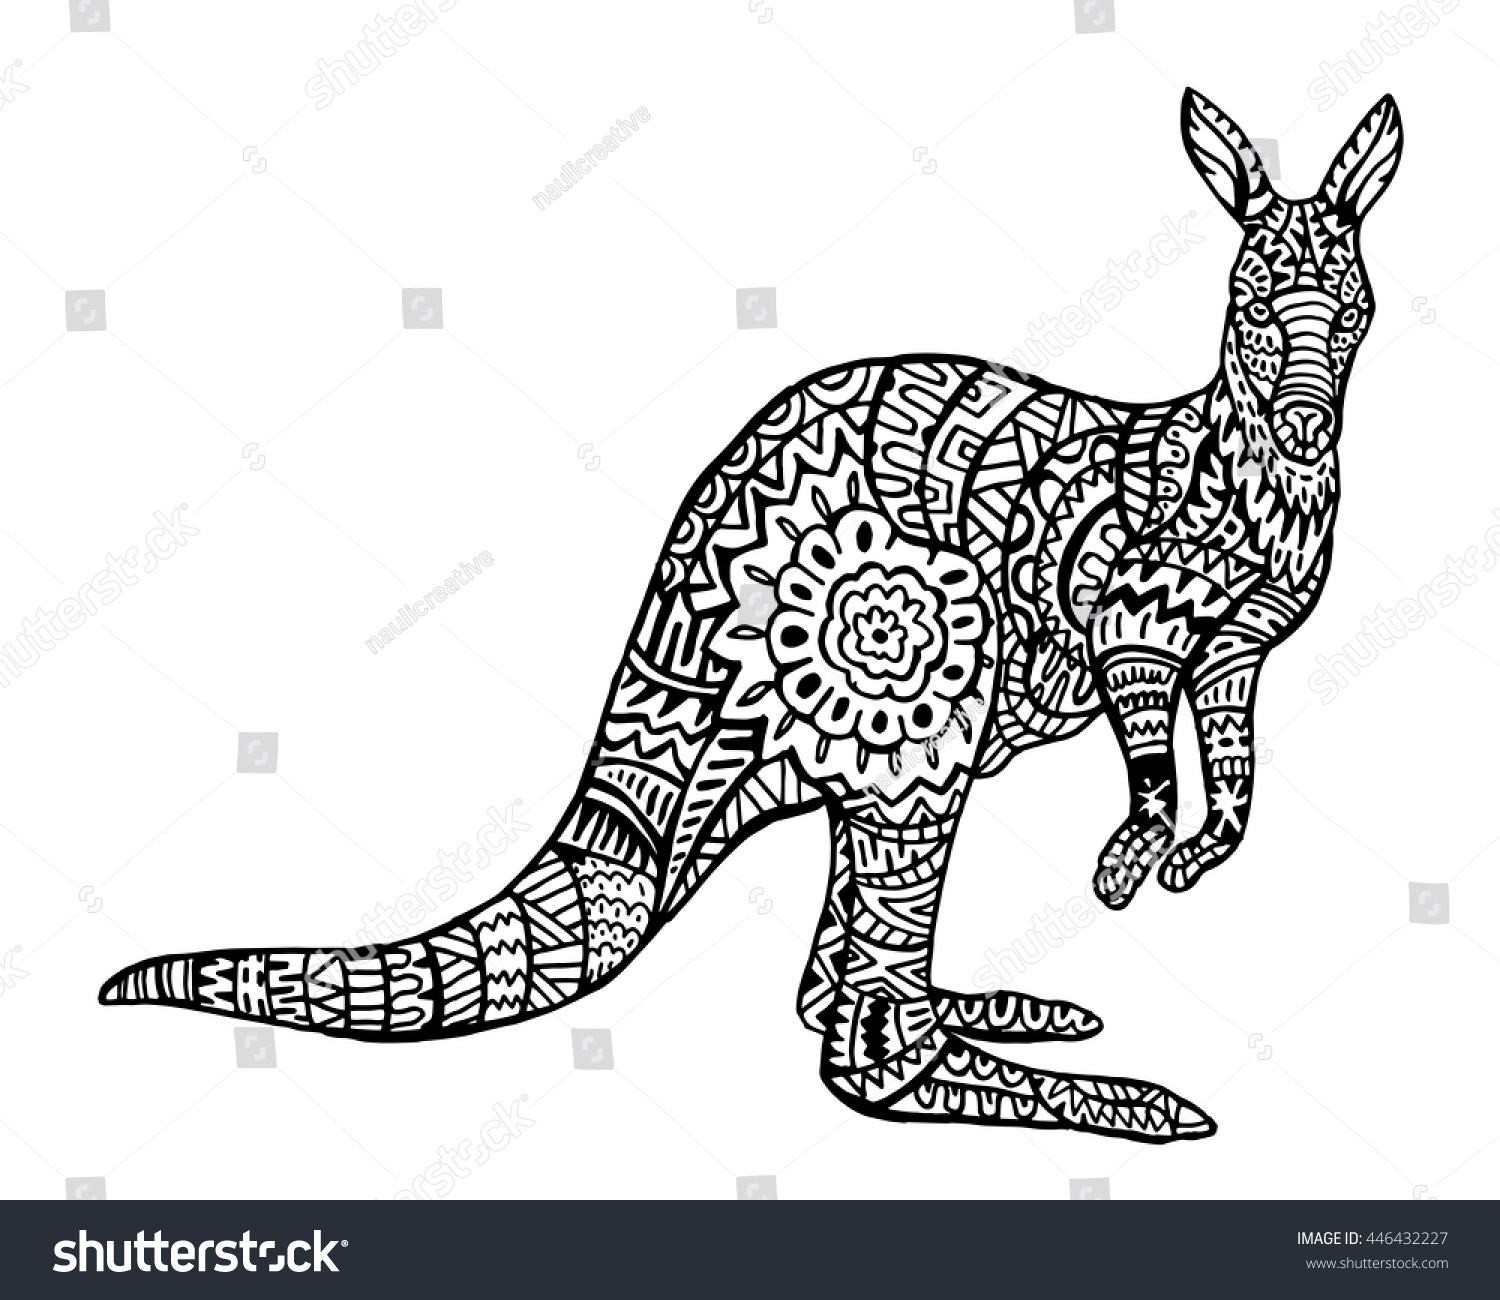 Stock vector ethnic animal doodle detail pattern killer whale - Ethnic Animal Doodle Detail Pattern Kangaroo Zentangle Illustration